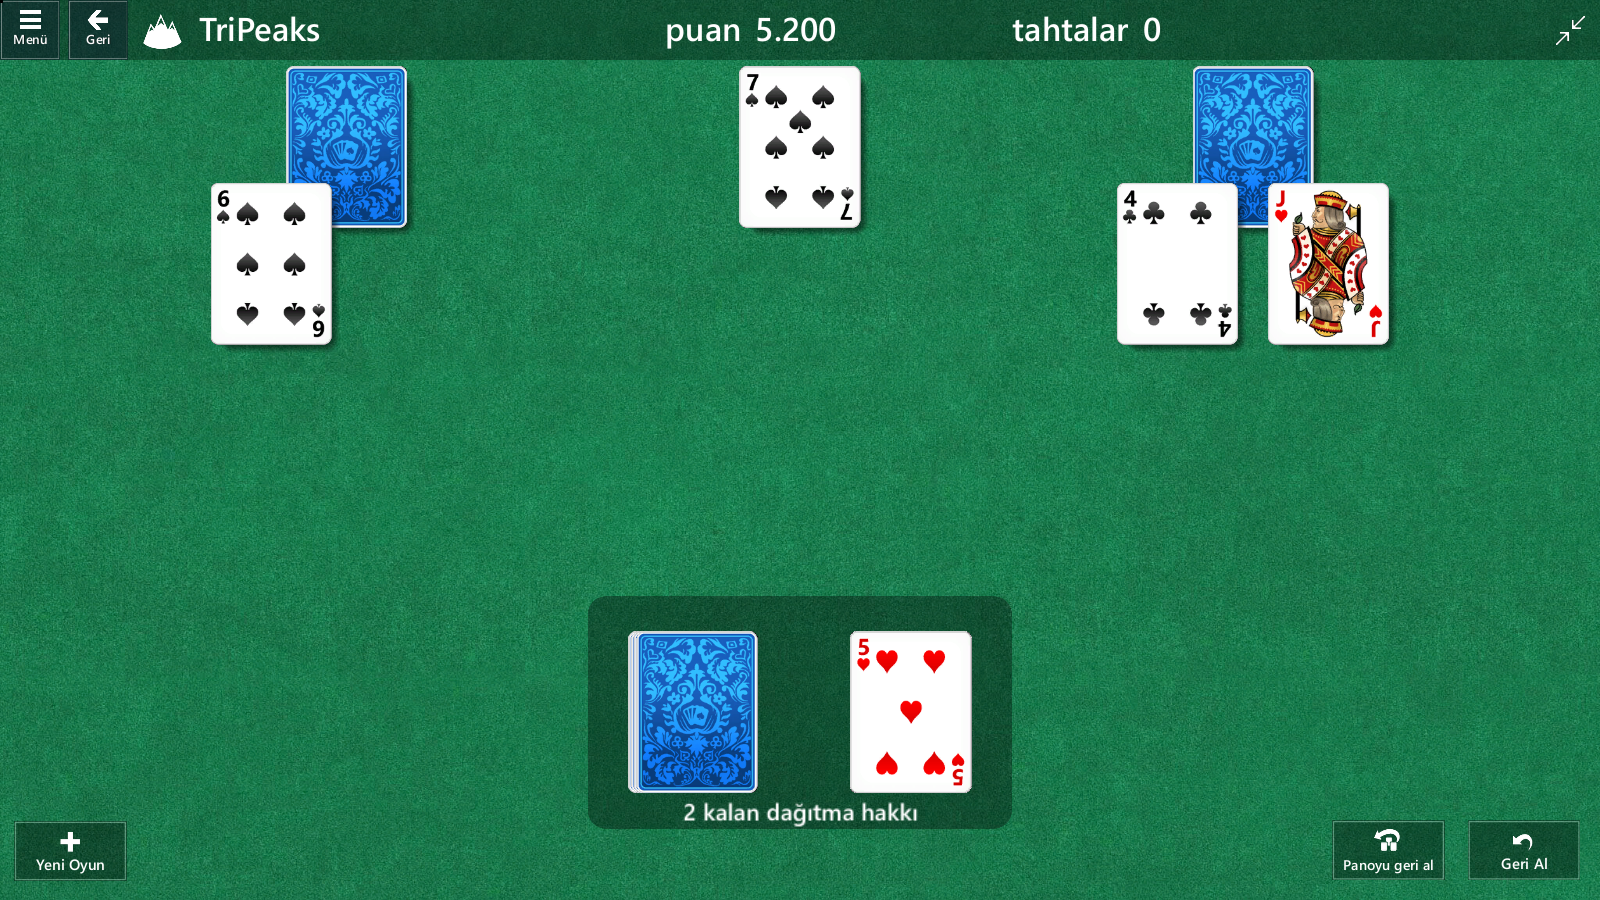 play TriPeaks with new Solitaire tips and tricks